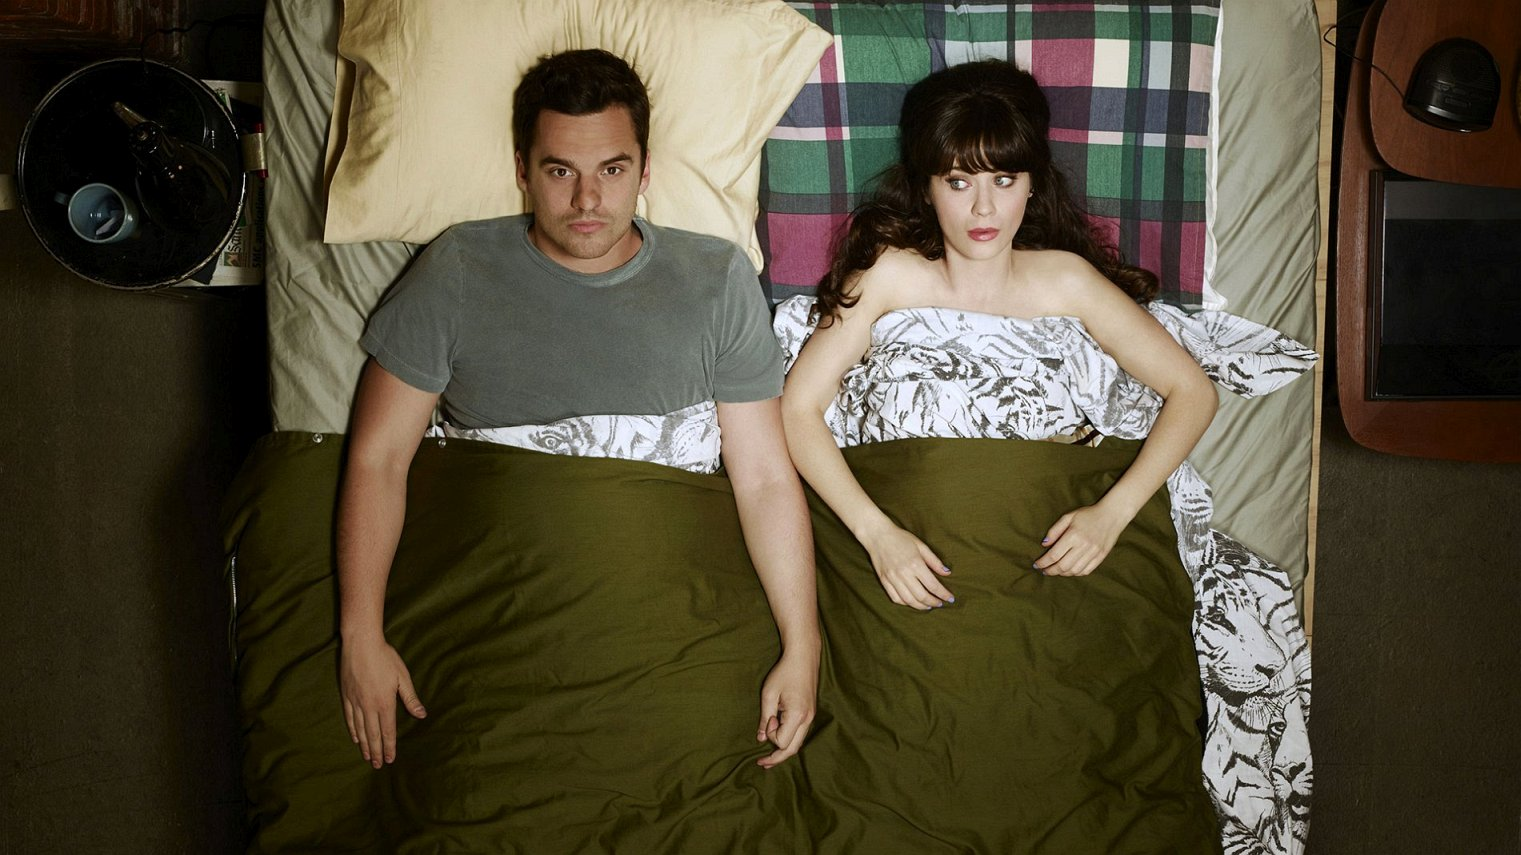 New Girl S7 episode 8 watch online